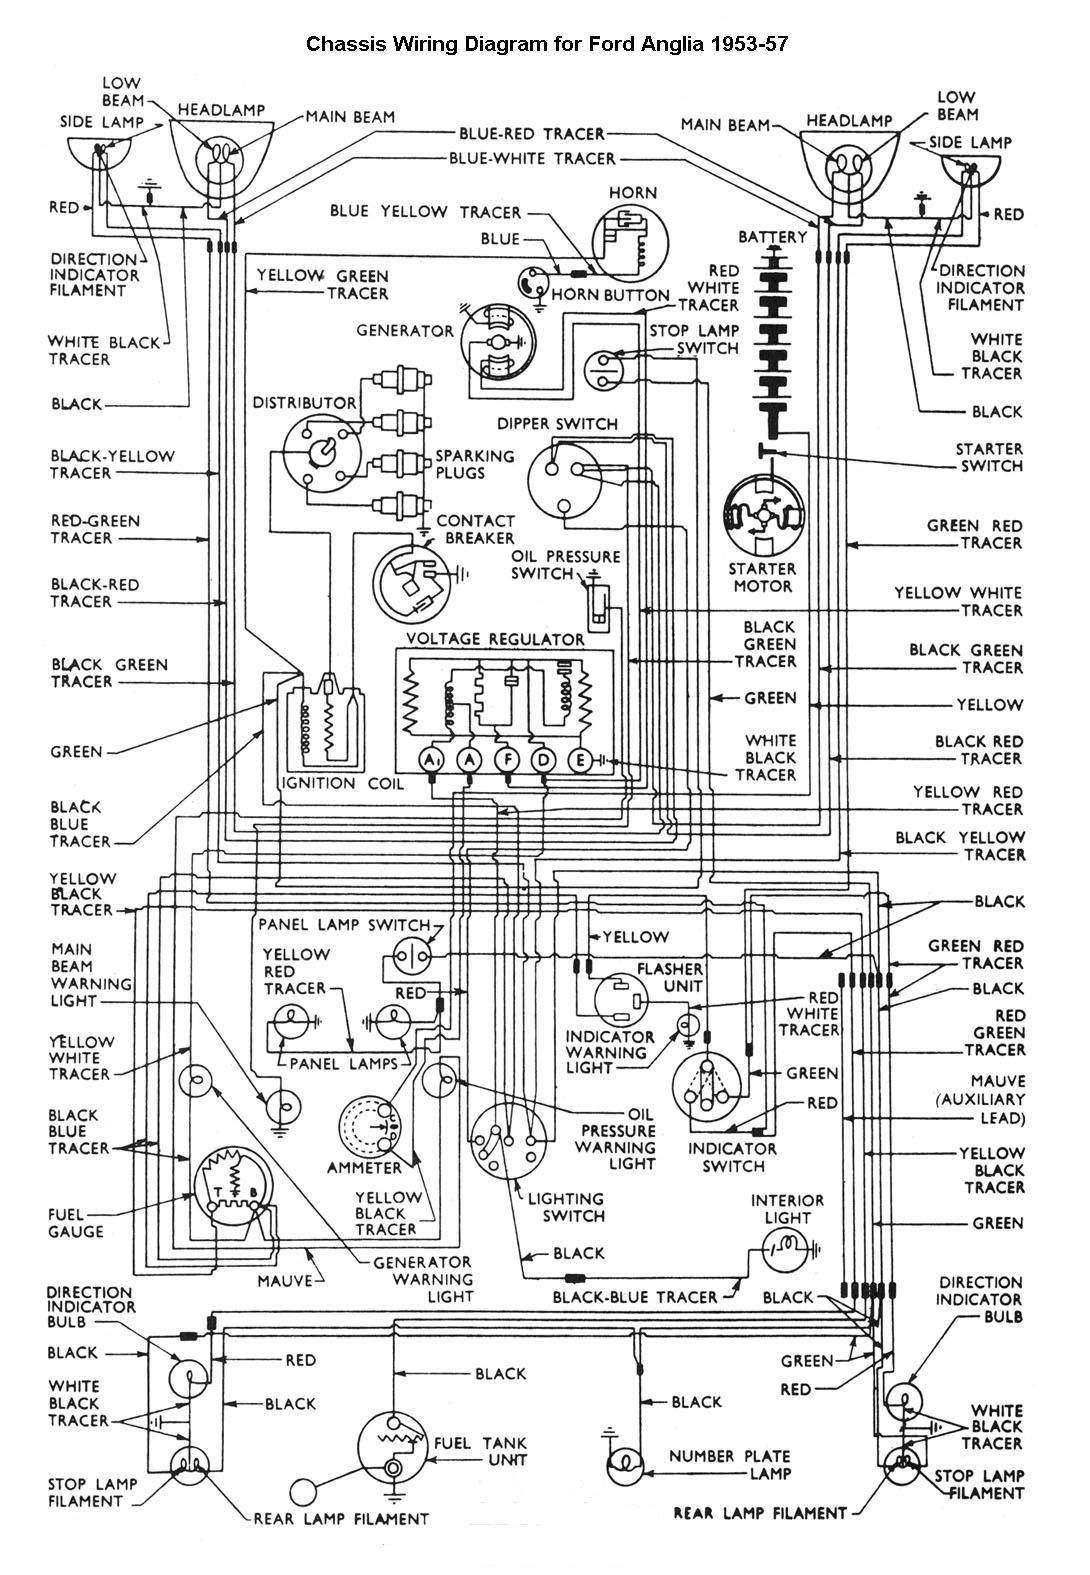 car wiring diagram mech truck repair cars motor carcar wiring diagram [ 1090 x 1575 Pixel ]